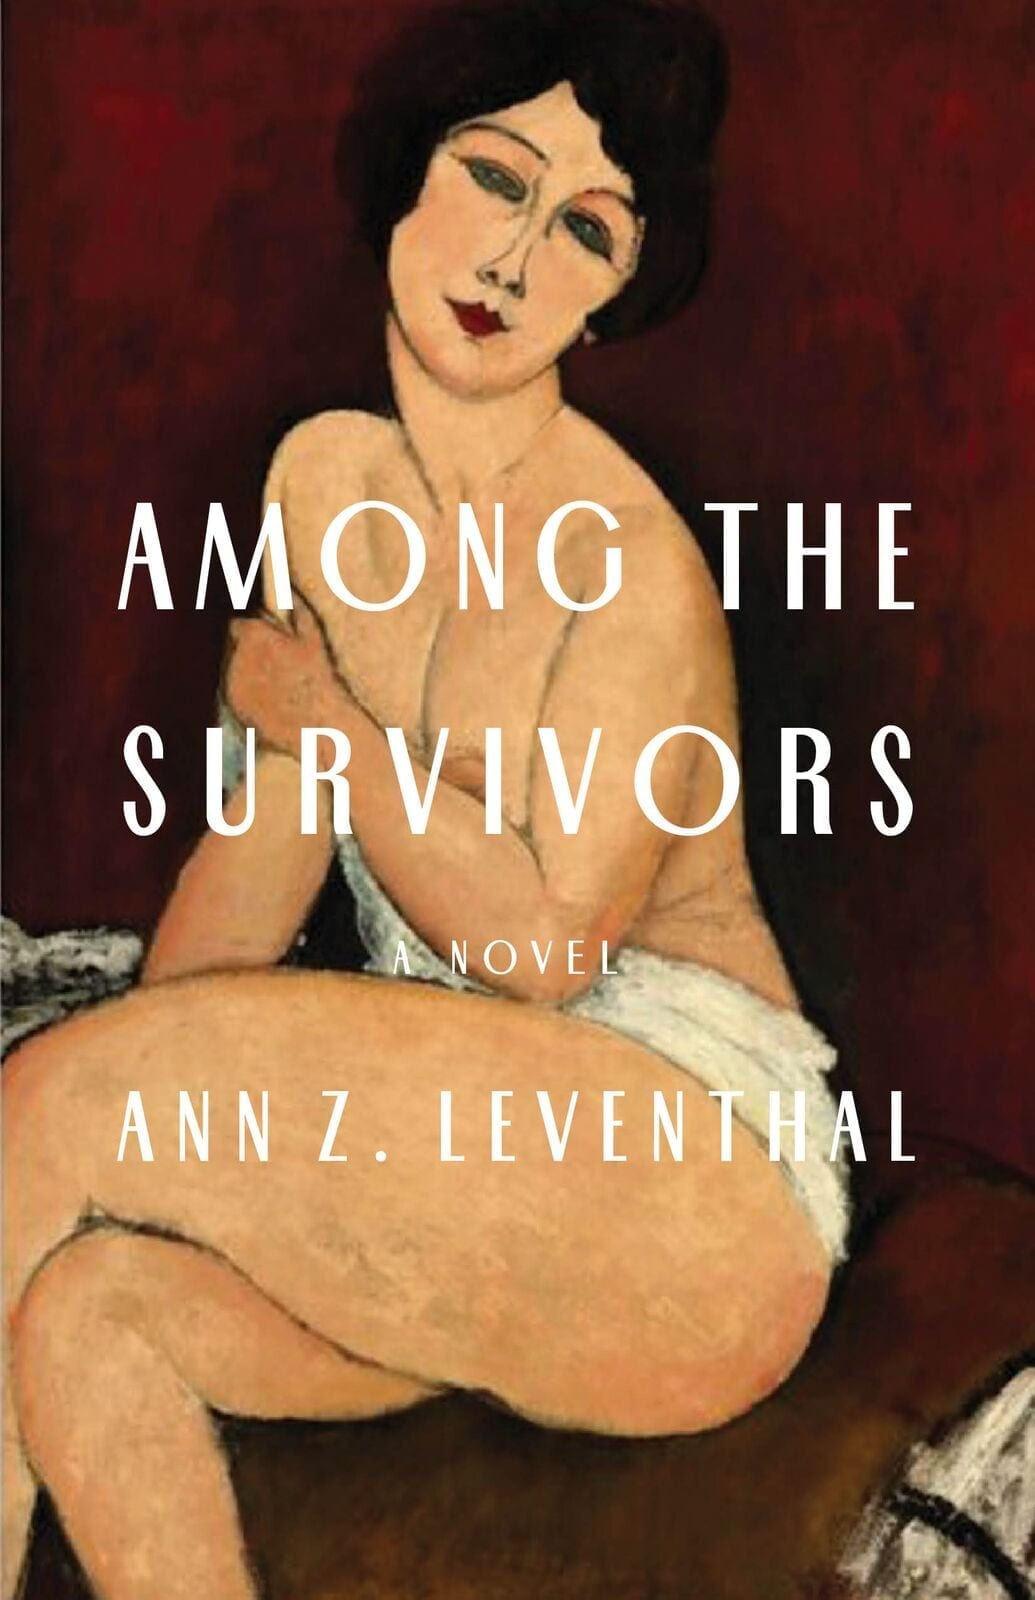 among the survivors by Ann Z. Leventhal